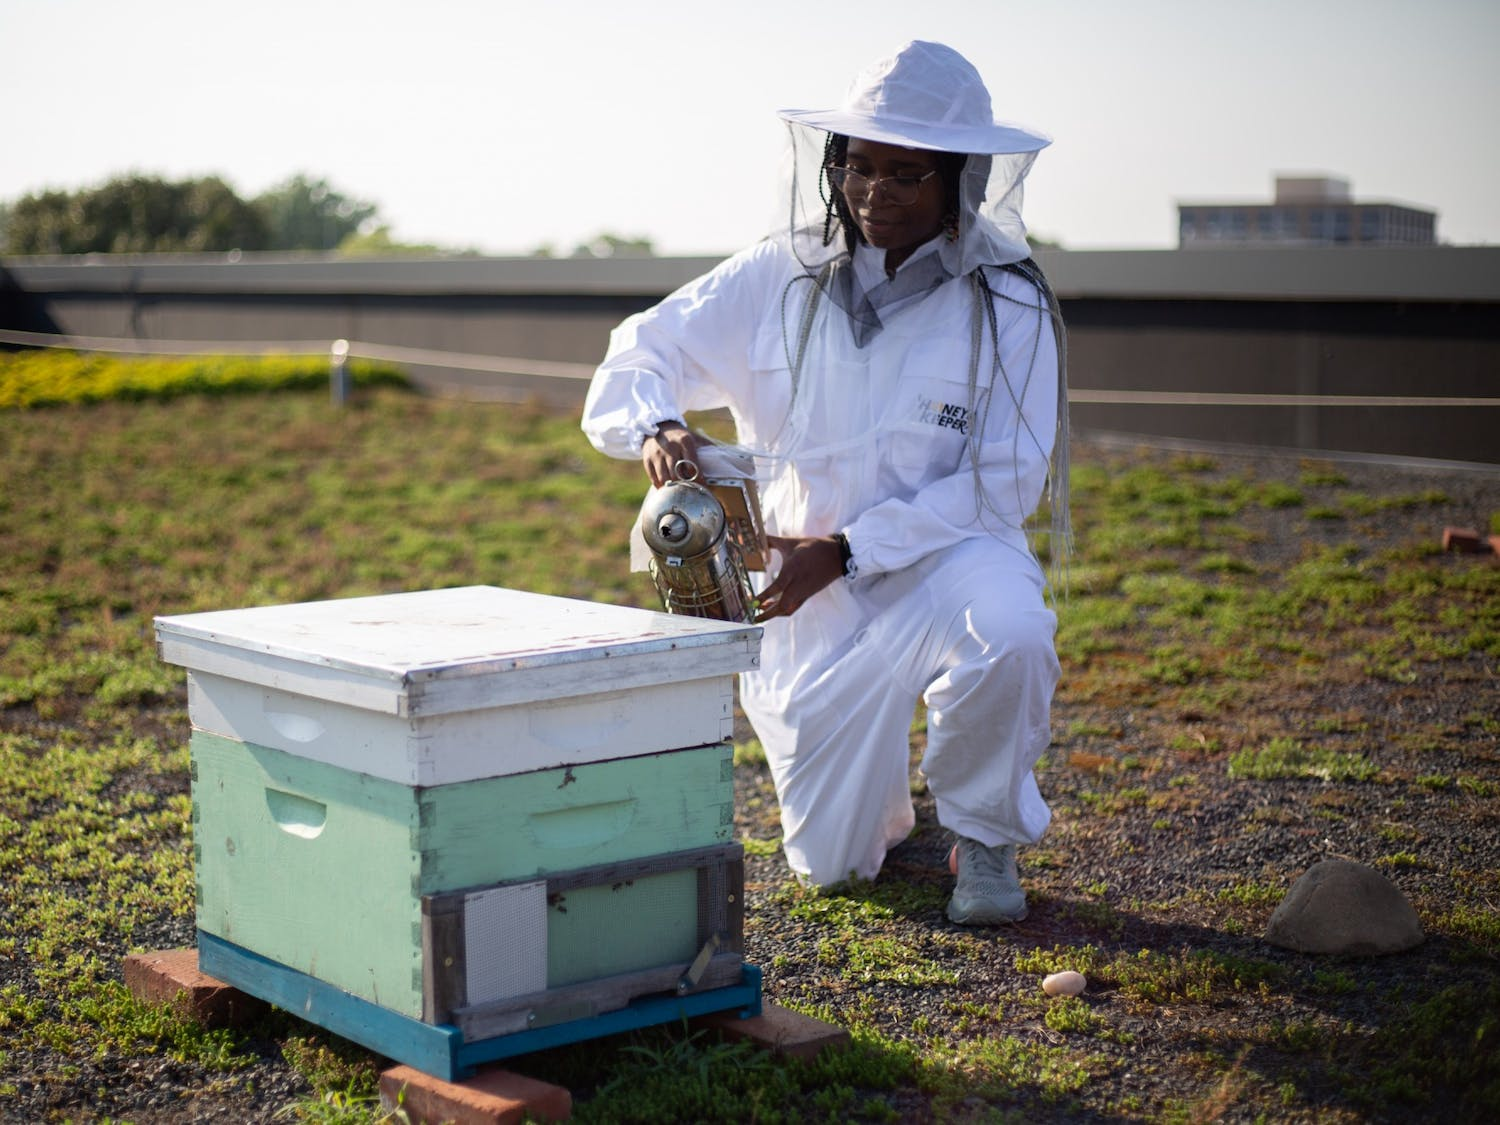 Junior biochemistry major Adrienne Lambert demonstrates how to use a smoker on a beehive on Monday, Aug. 23, 2021. Lambert is the president of the Carolina Beekeeping Club.